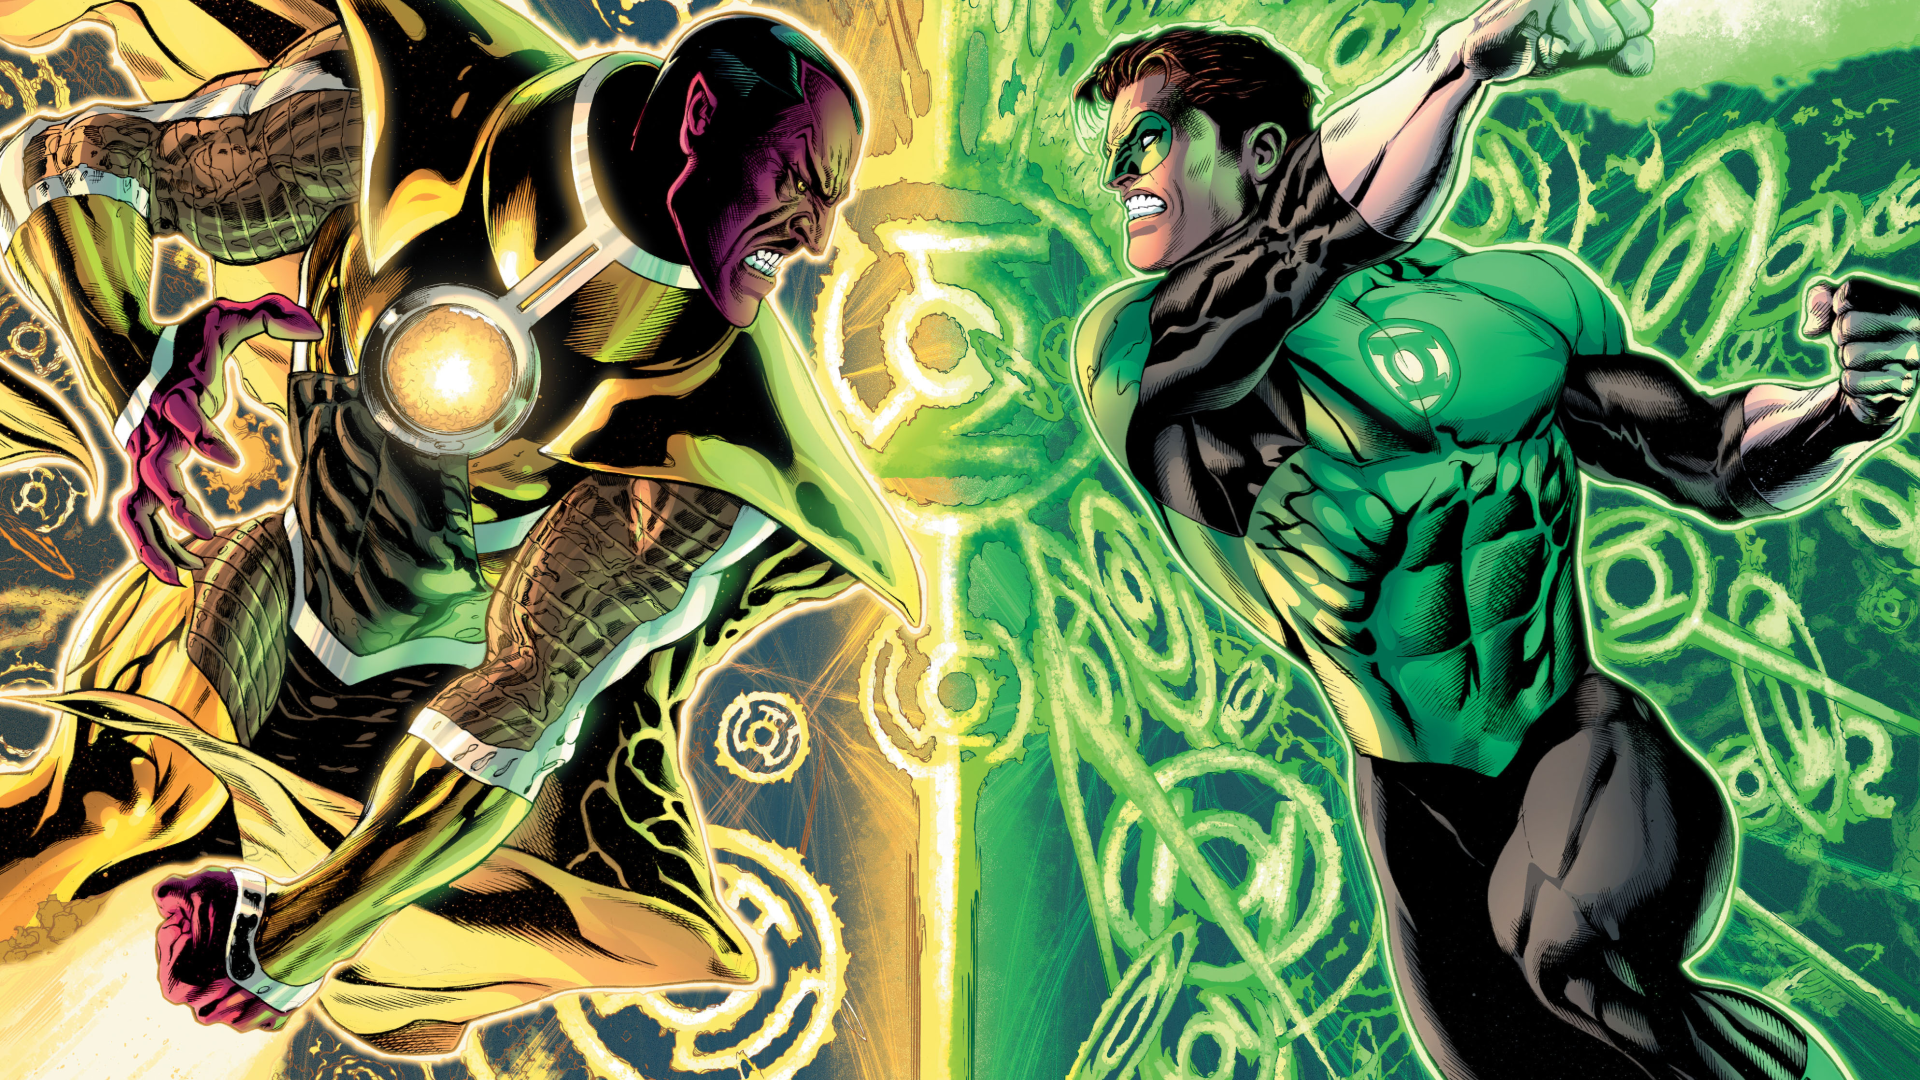 Desktop Images of Green Lantern: 30/01/2016 by Ned Kinser